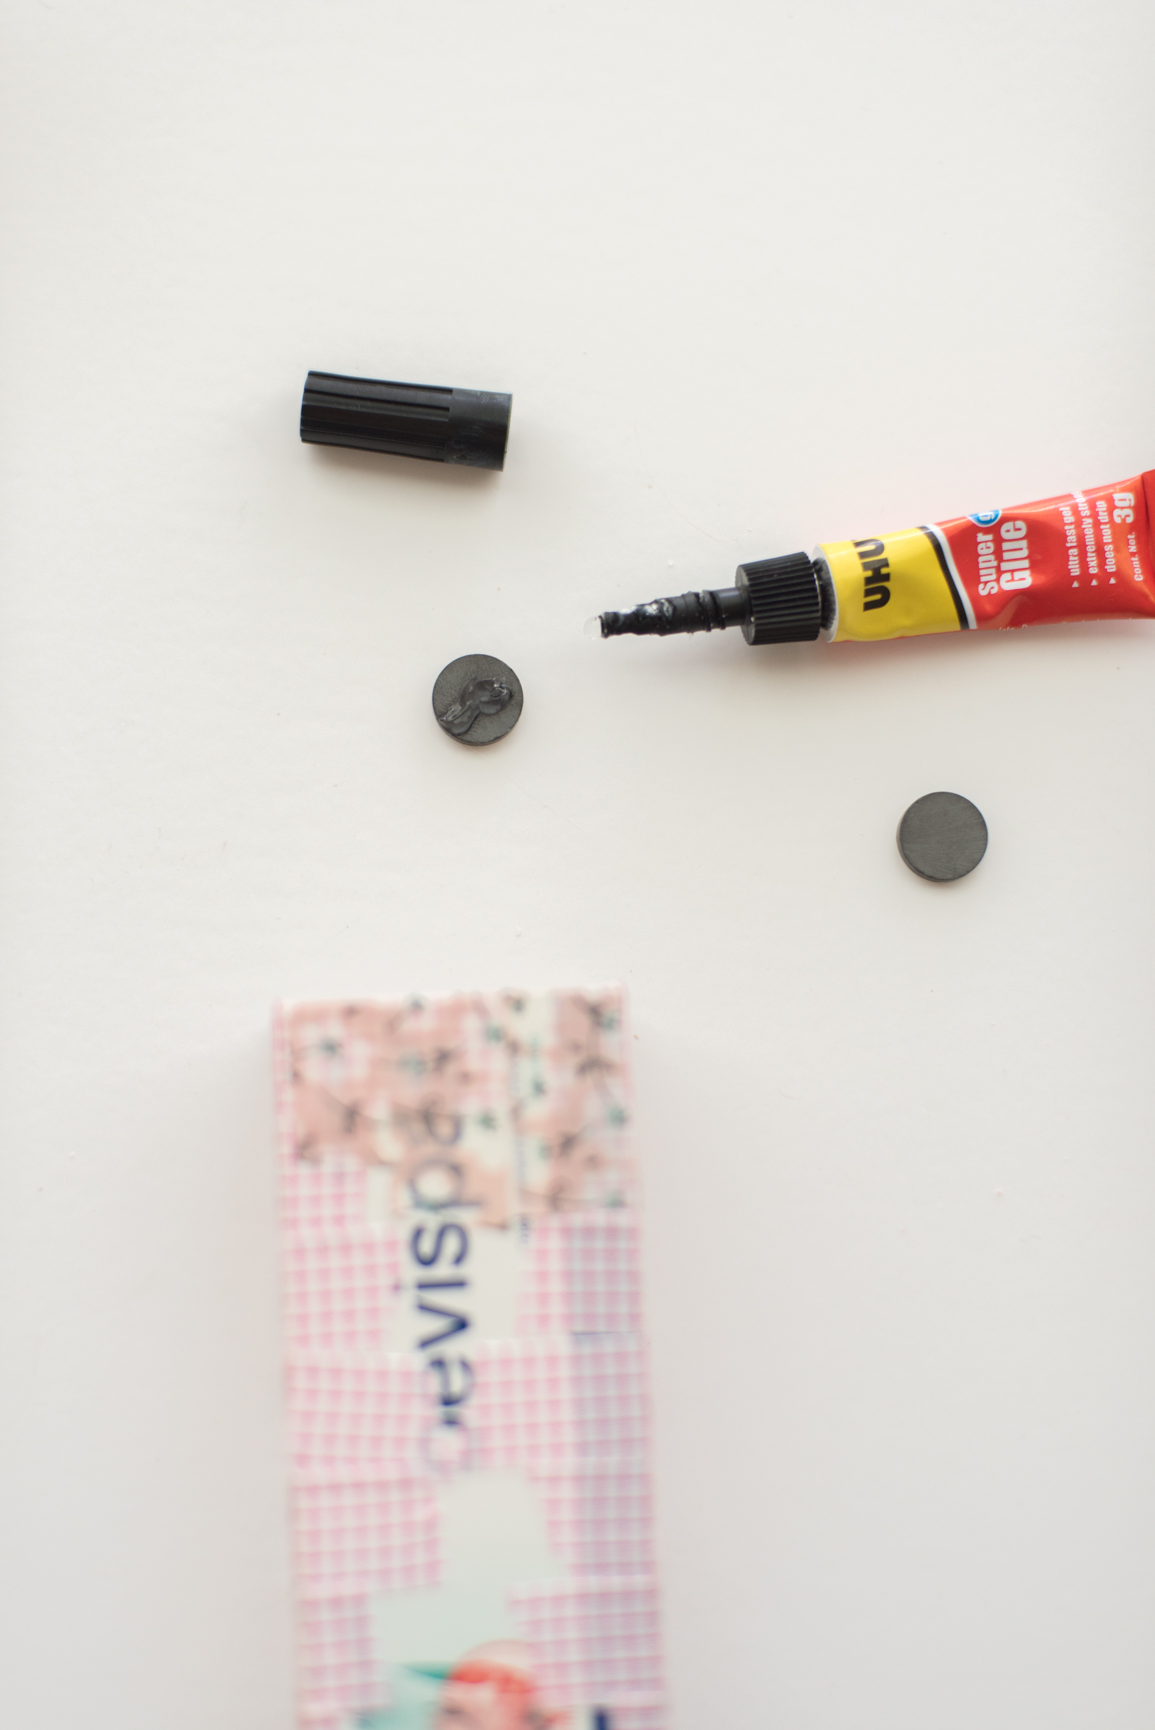 DIY How to make Magnetic Pen Holder for the Fridge by CGScreative (10 of 15).JPG